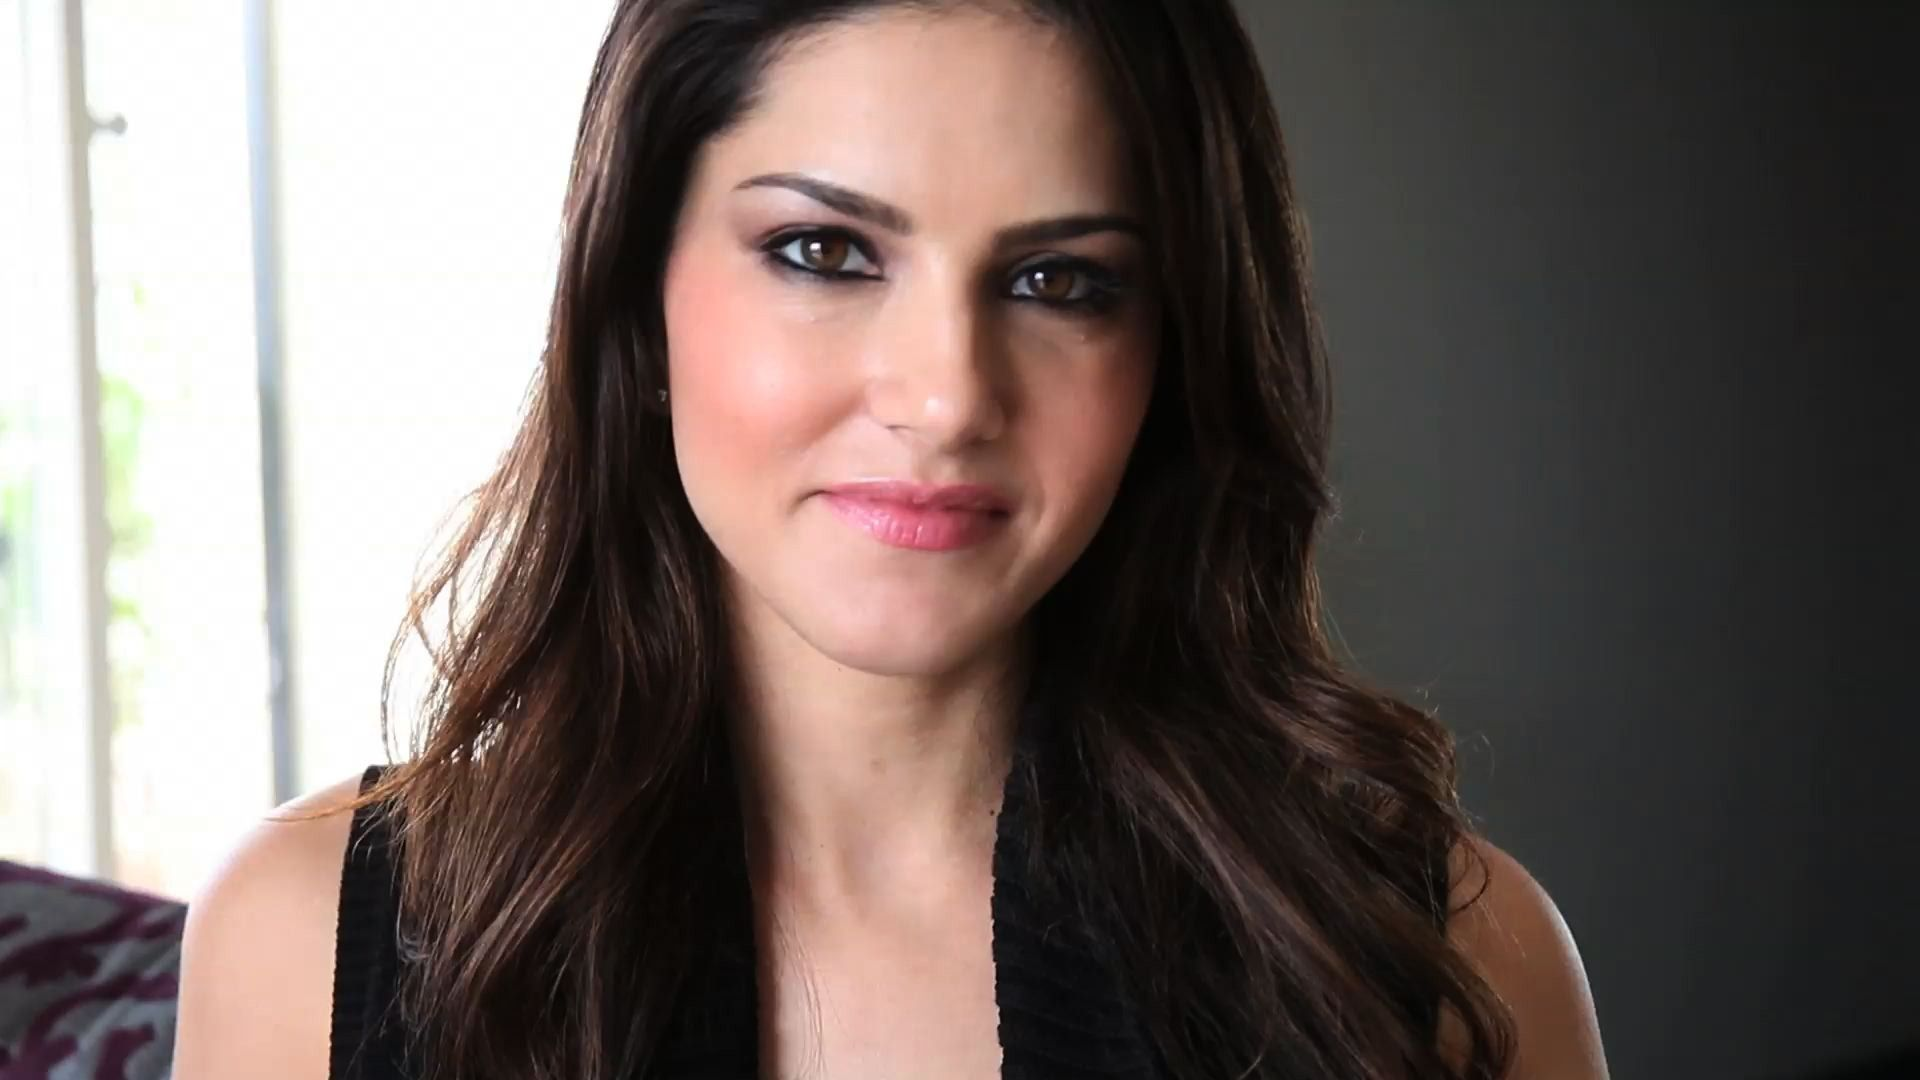 Smile Face Of Bollywood Actress Sunny Leone Hd Wallpapers